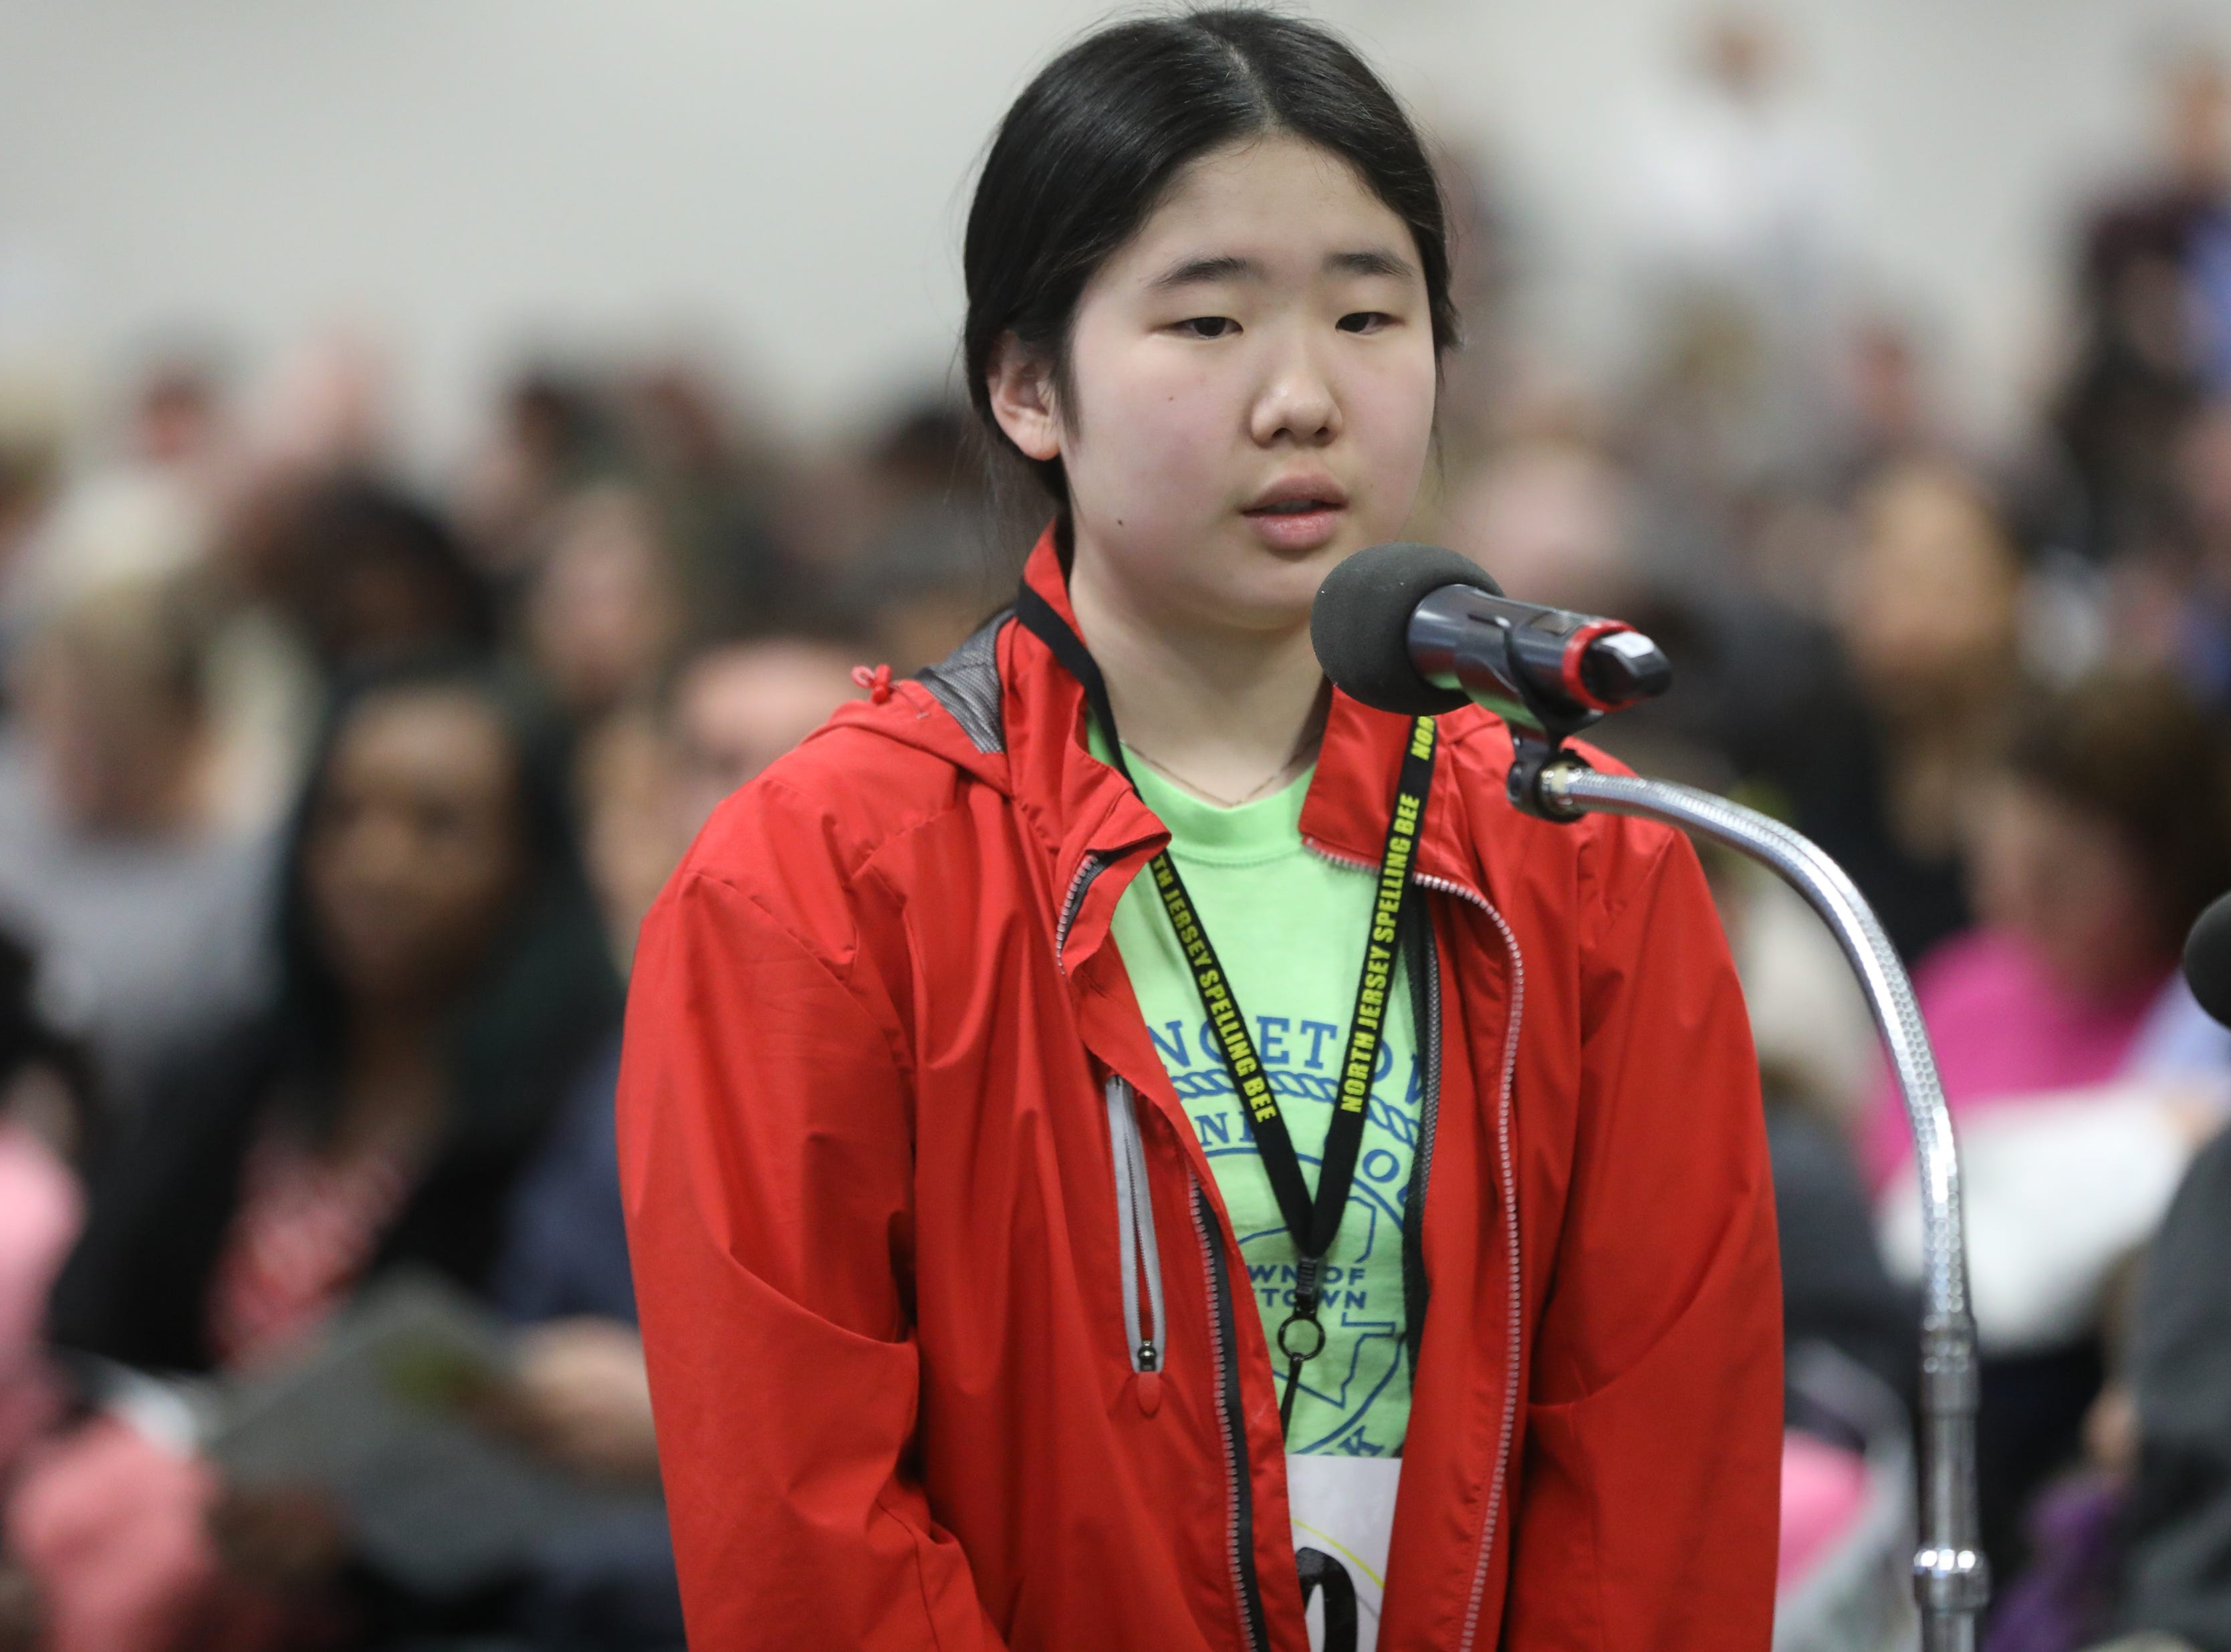 Courtney Kim, of Fort Lee, competes in the first round of the 2019 North Jersey Spelling Bee, in Paramus. Thursday, March 14, 2019